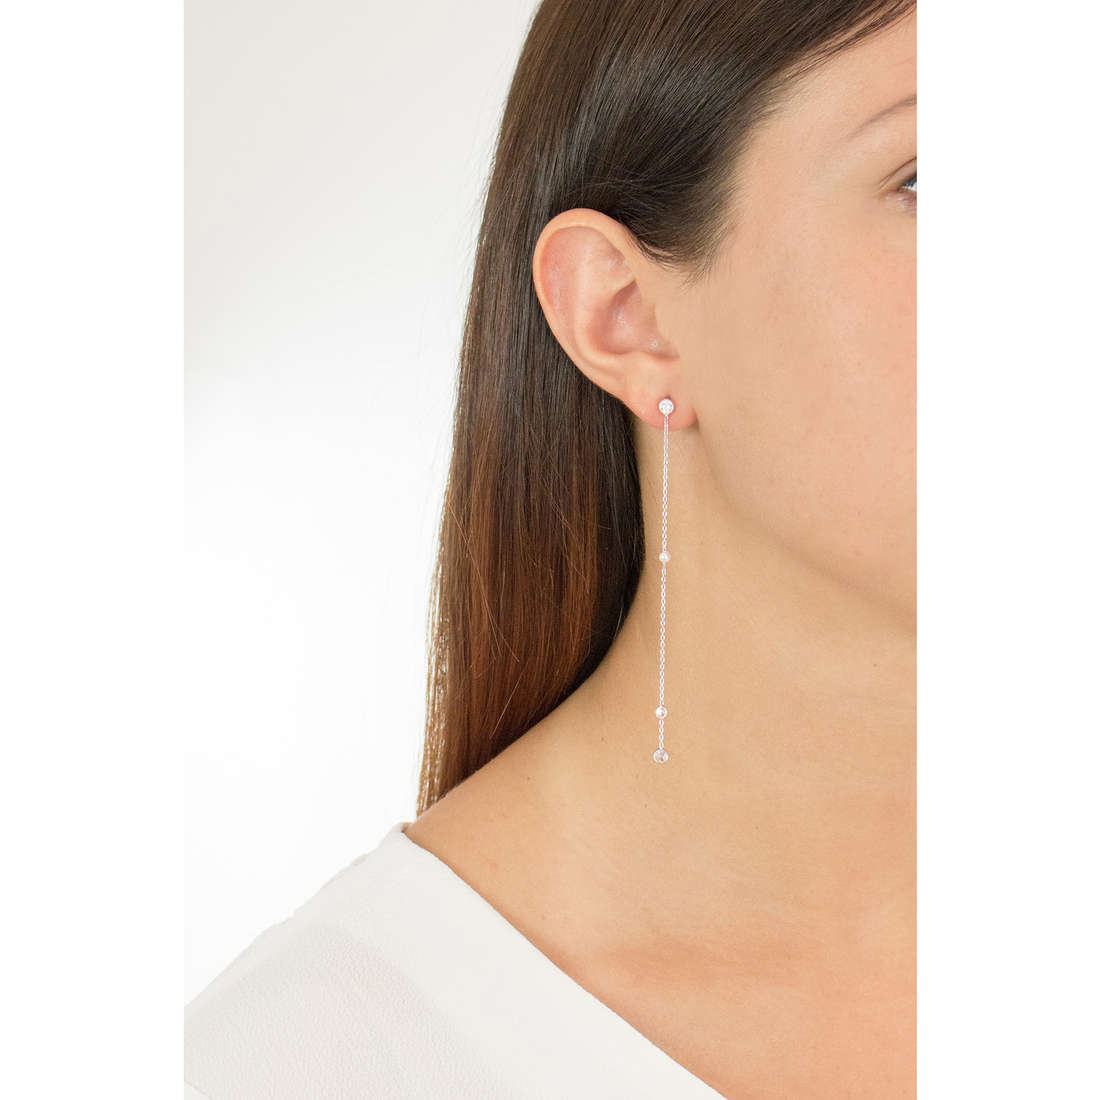 Nomination boucles d'oreille Bella femme 142663/010 photo wearing